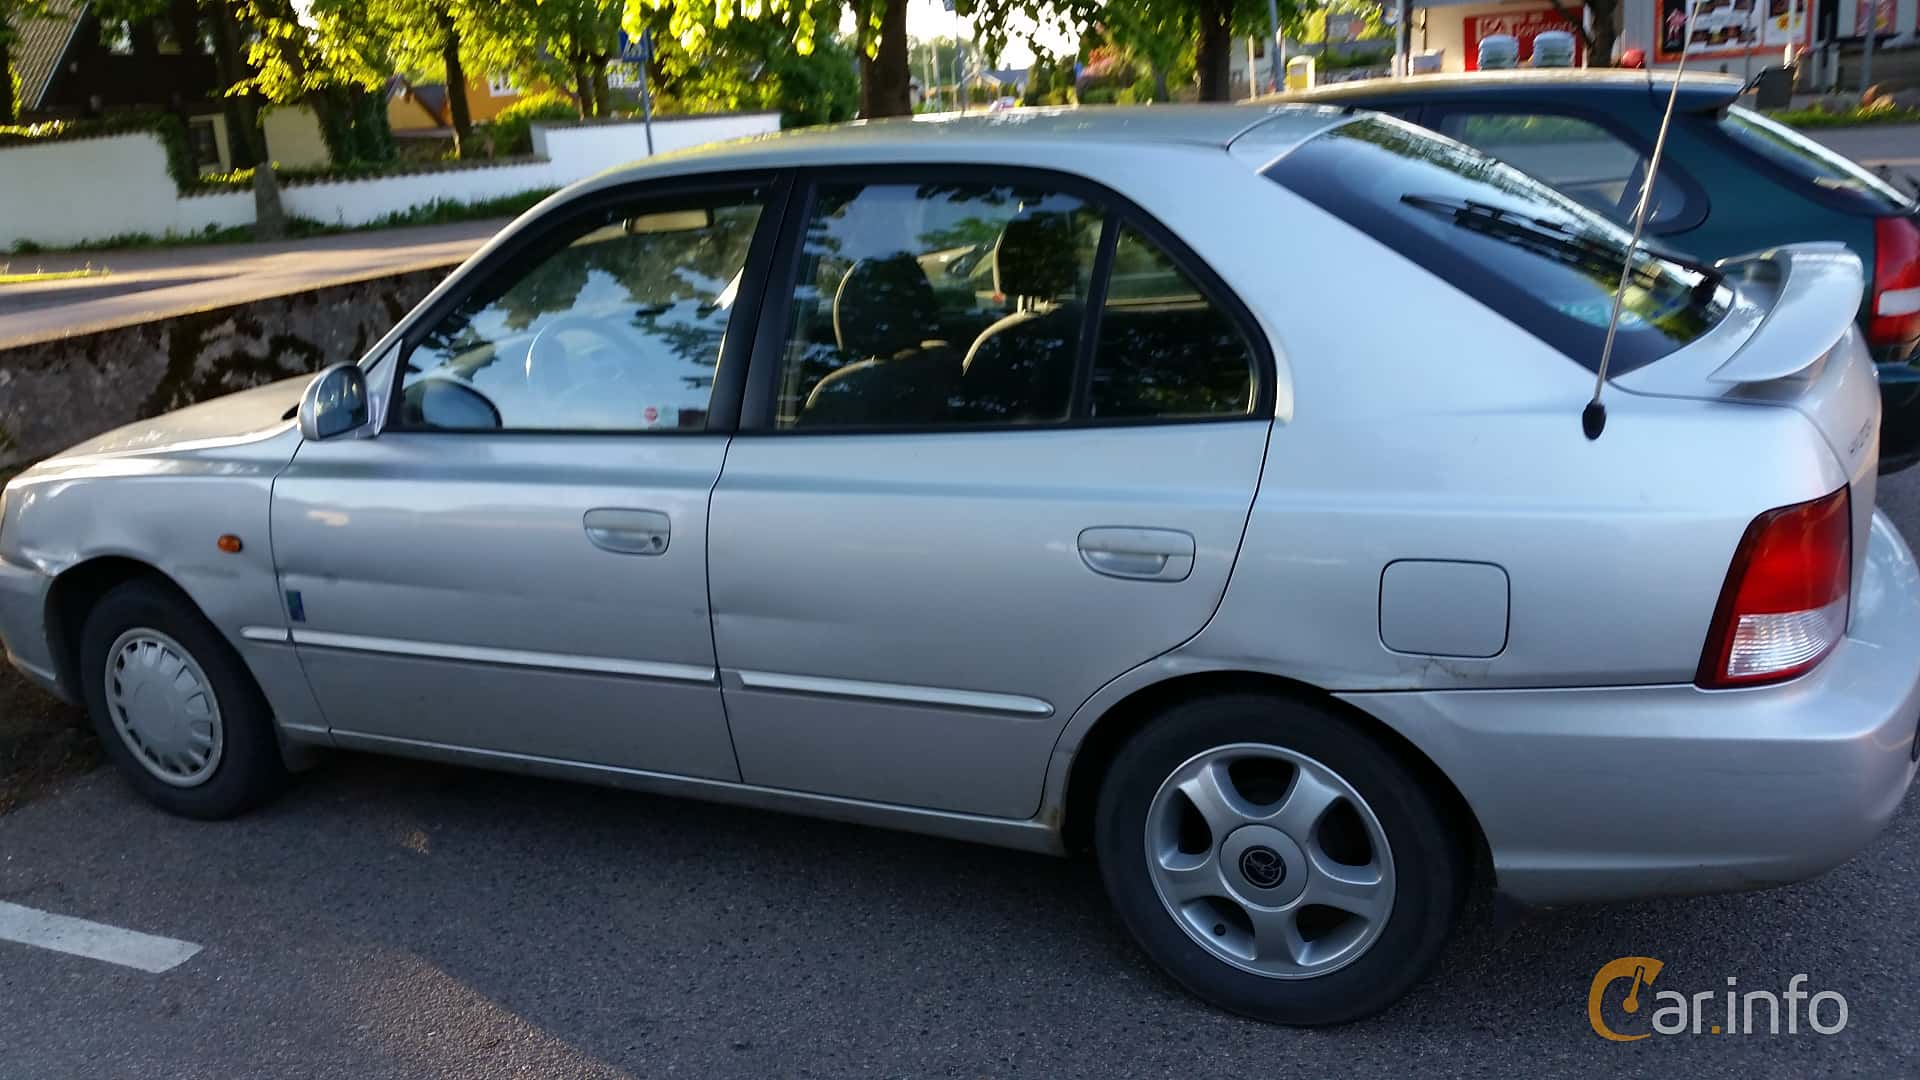 2 images of hyundai accent 5 door 1 5 manual 90hp 2002 by jonasbonde door 1 5 manual 90hp 2002 by jonasbonde